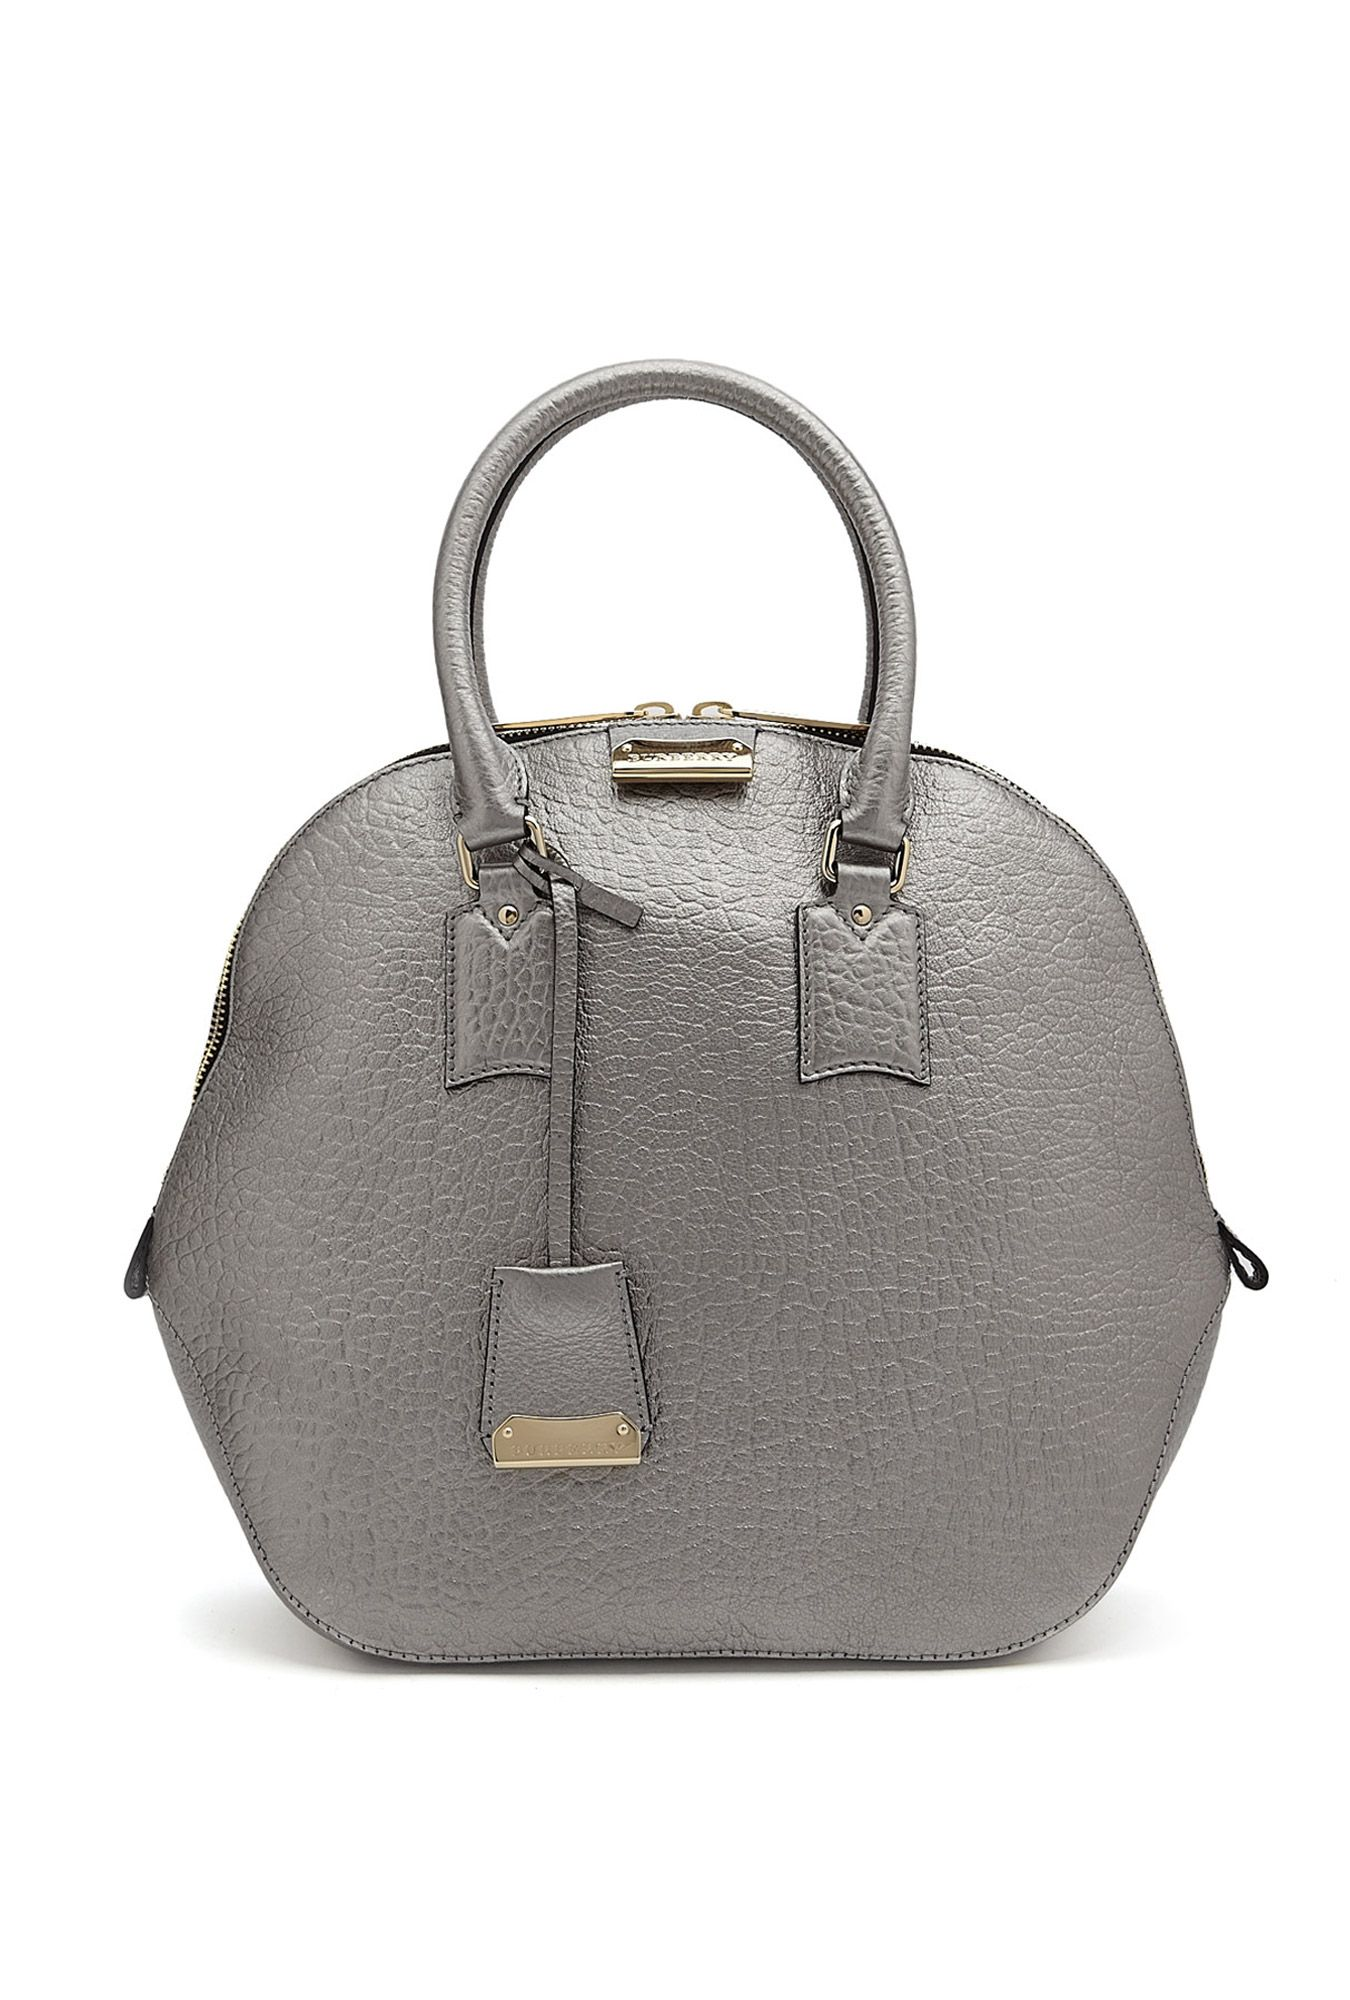 dae6e6058f6b Silver Leather Medium Orchard Bowling Bag by Burberry